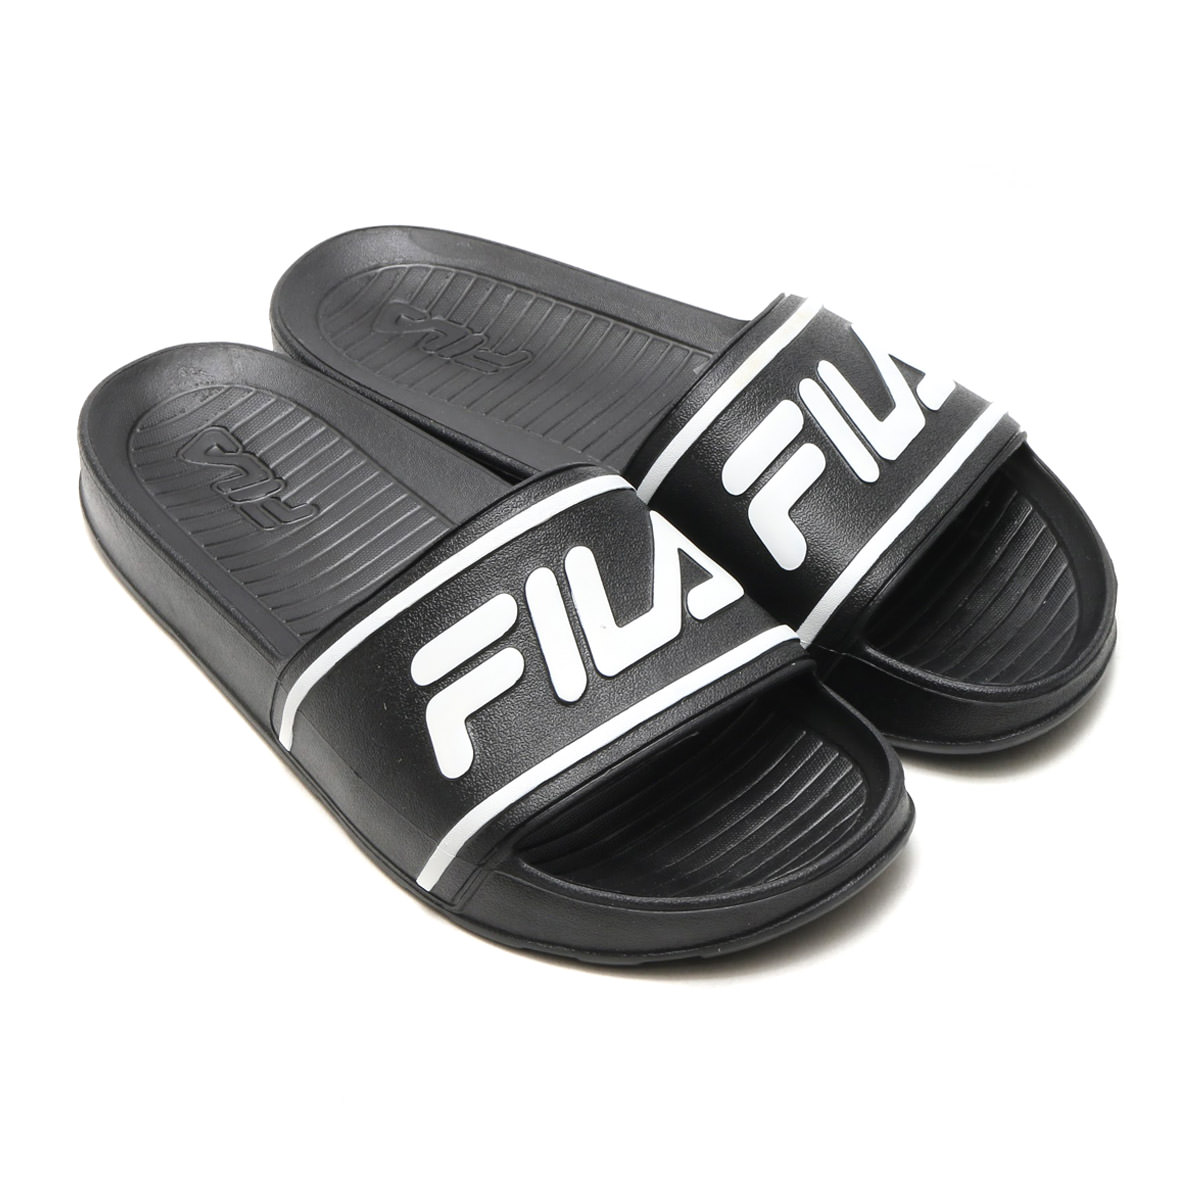 Fila SLEEK SLIDE LT Mens Black Slip On Athletic Sandals by Fila